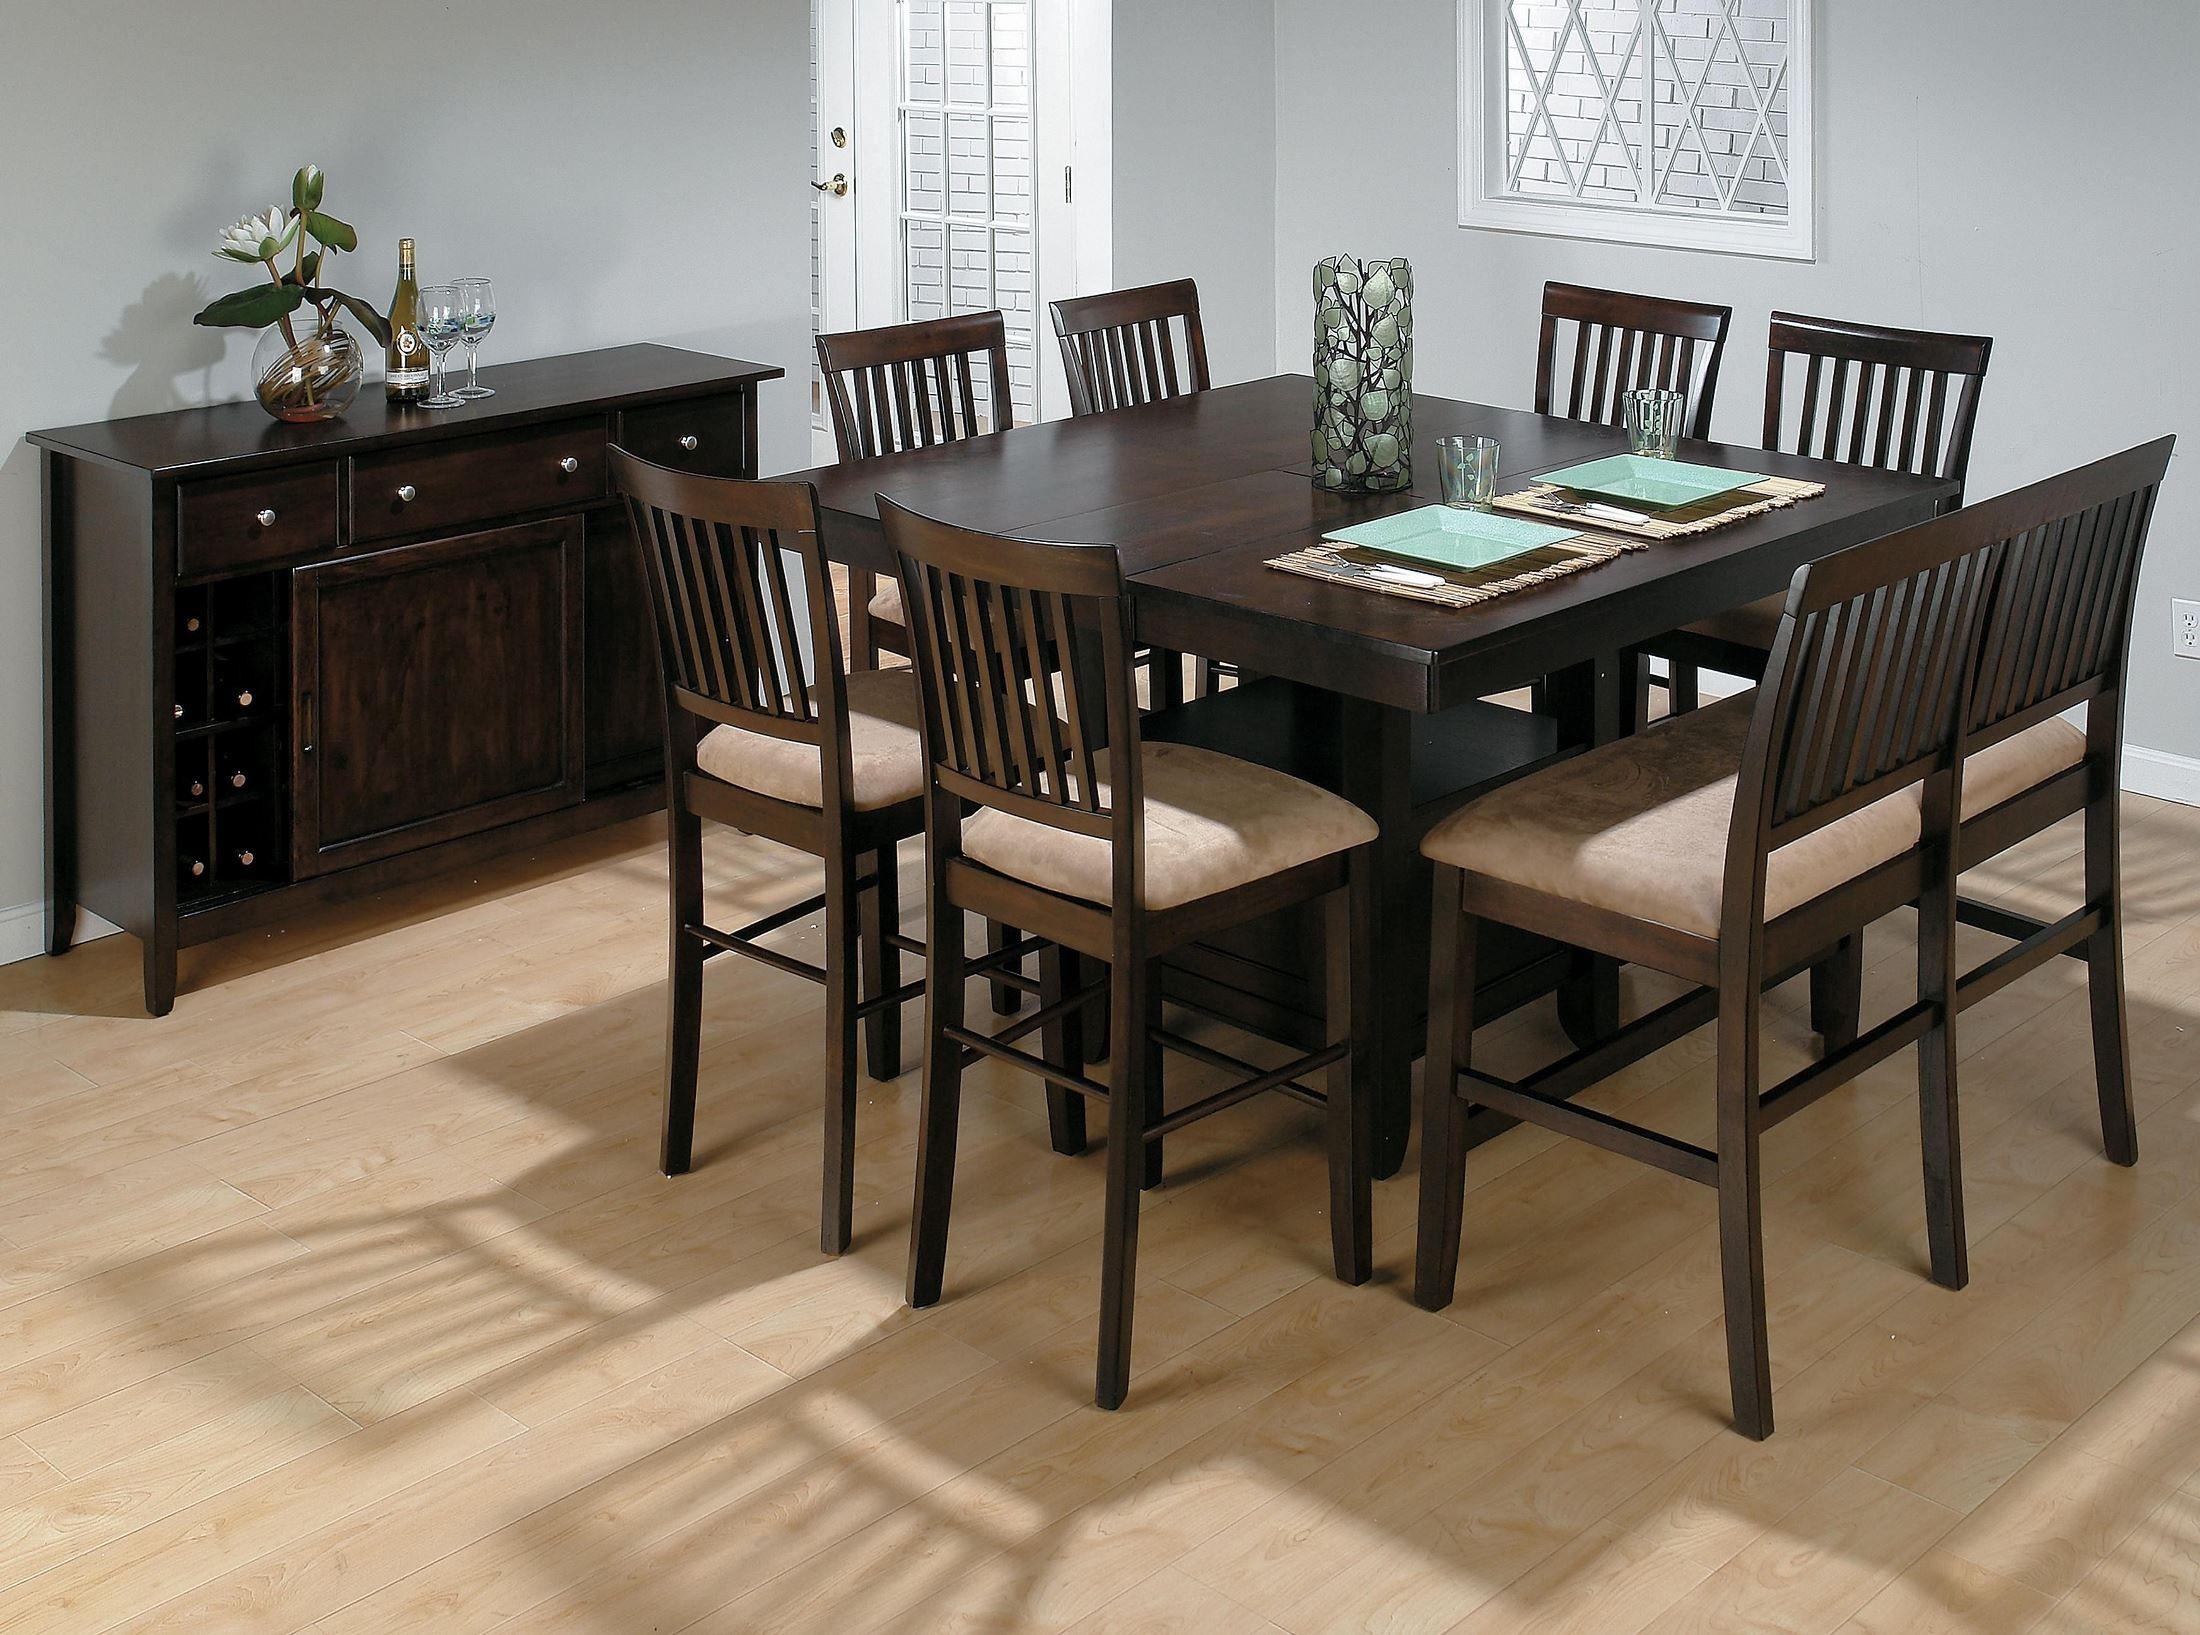 Jofran Bakers Cherry Storage Counter Height Dining Table Bakers